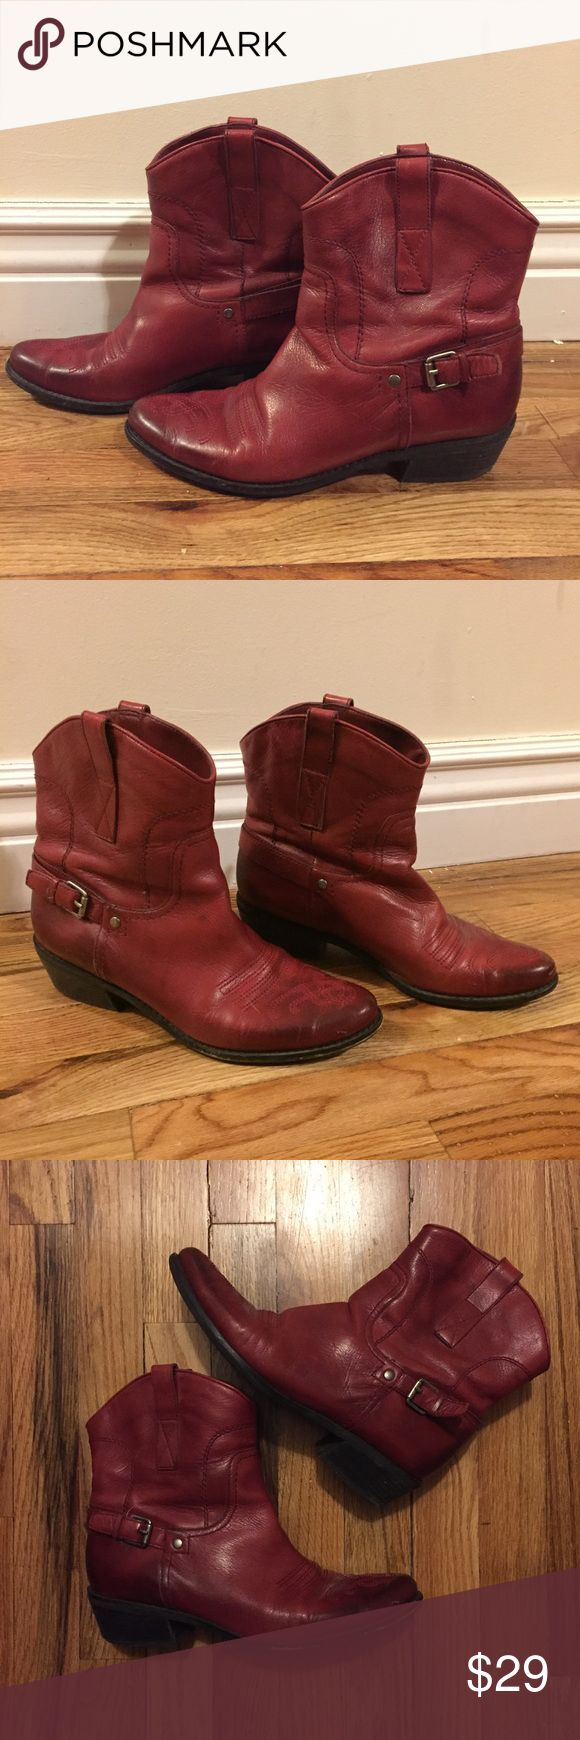 """Red Leather Cowboy Ankle Boots Franco Sarto oxblood red leather pull on ankle boots with burnished effect at toe & heel gives these western boots a polished modern look. Classic western cowboy stitching at toe with 1-1/2""""H stacked heel. Strap buckle detail at ankle with matte silver hardware. Size women's 8.5 M. In good used condition. A couple of thin scratch  marks at front toes & some wear on left sole shown in pic. Some wear on back heels. Add a stylish pop of color with your fav pair of…"""